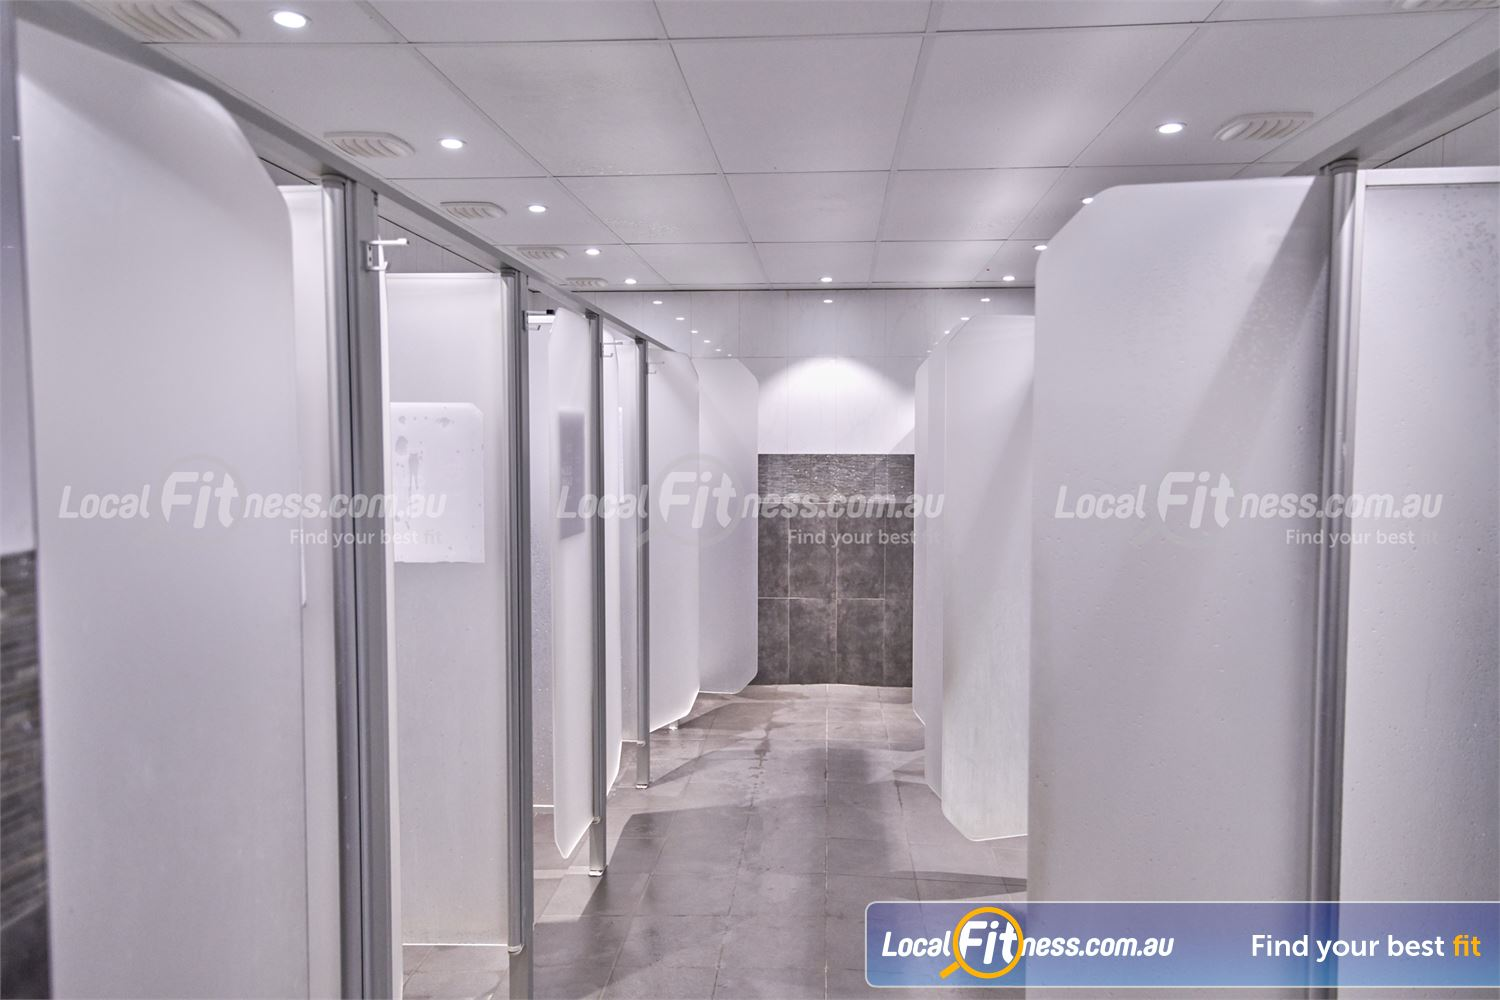 Fitness First Bayside Highett Luxurious shower facilities with complimentary shampoos and soaps.